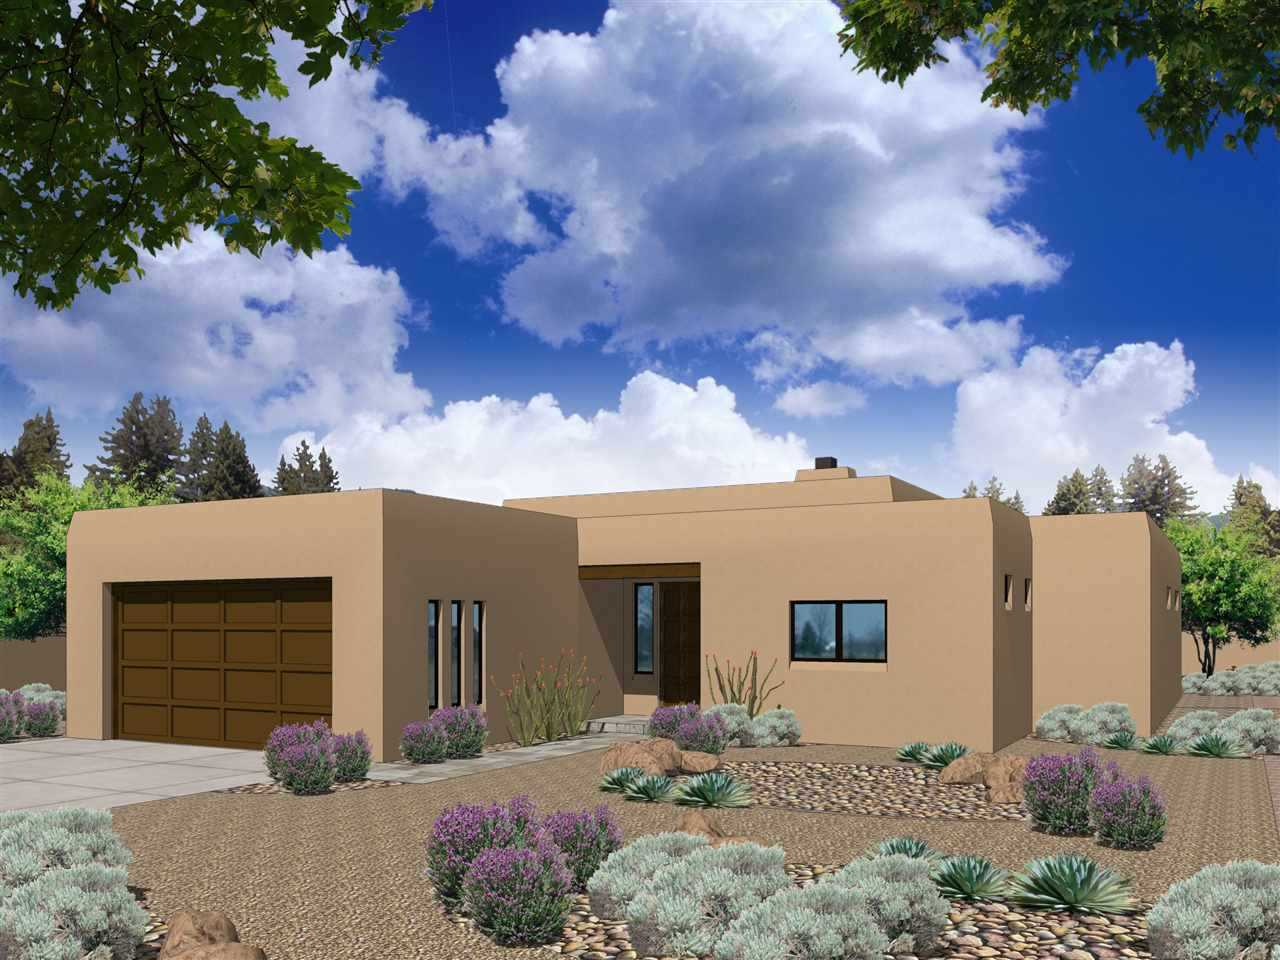 125 BISHOP LAMY, Santa Fe NM 87540